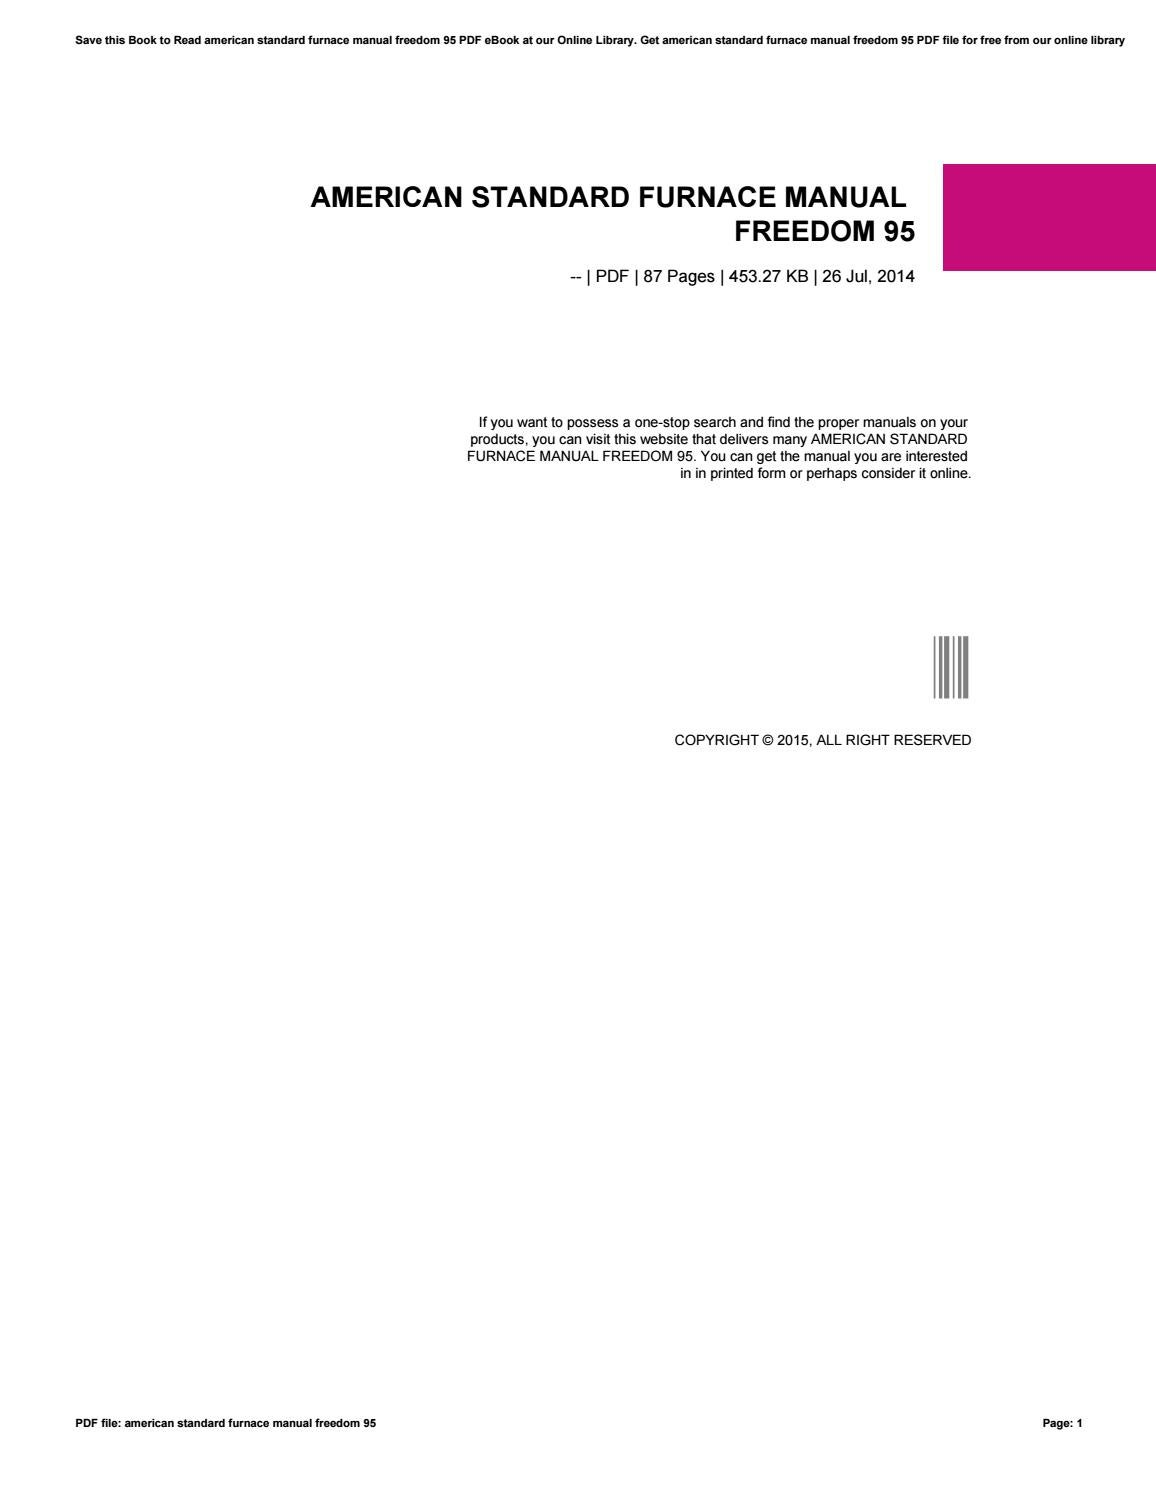 american standard furnace manual freedom 95